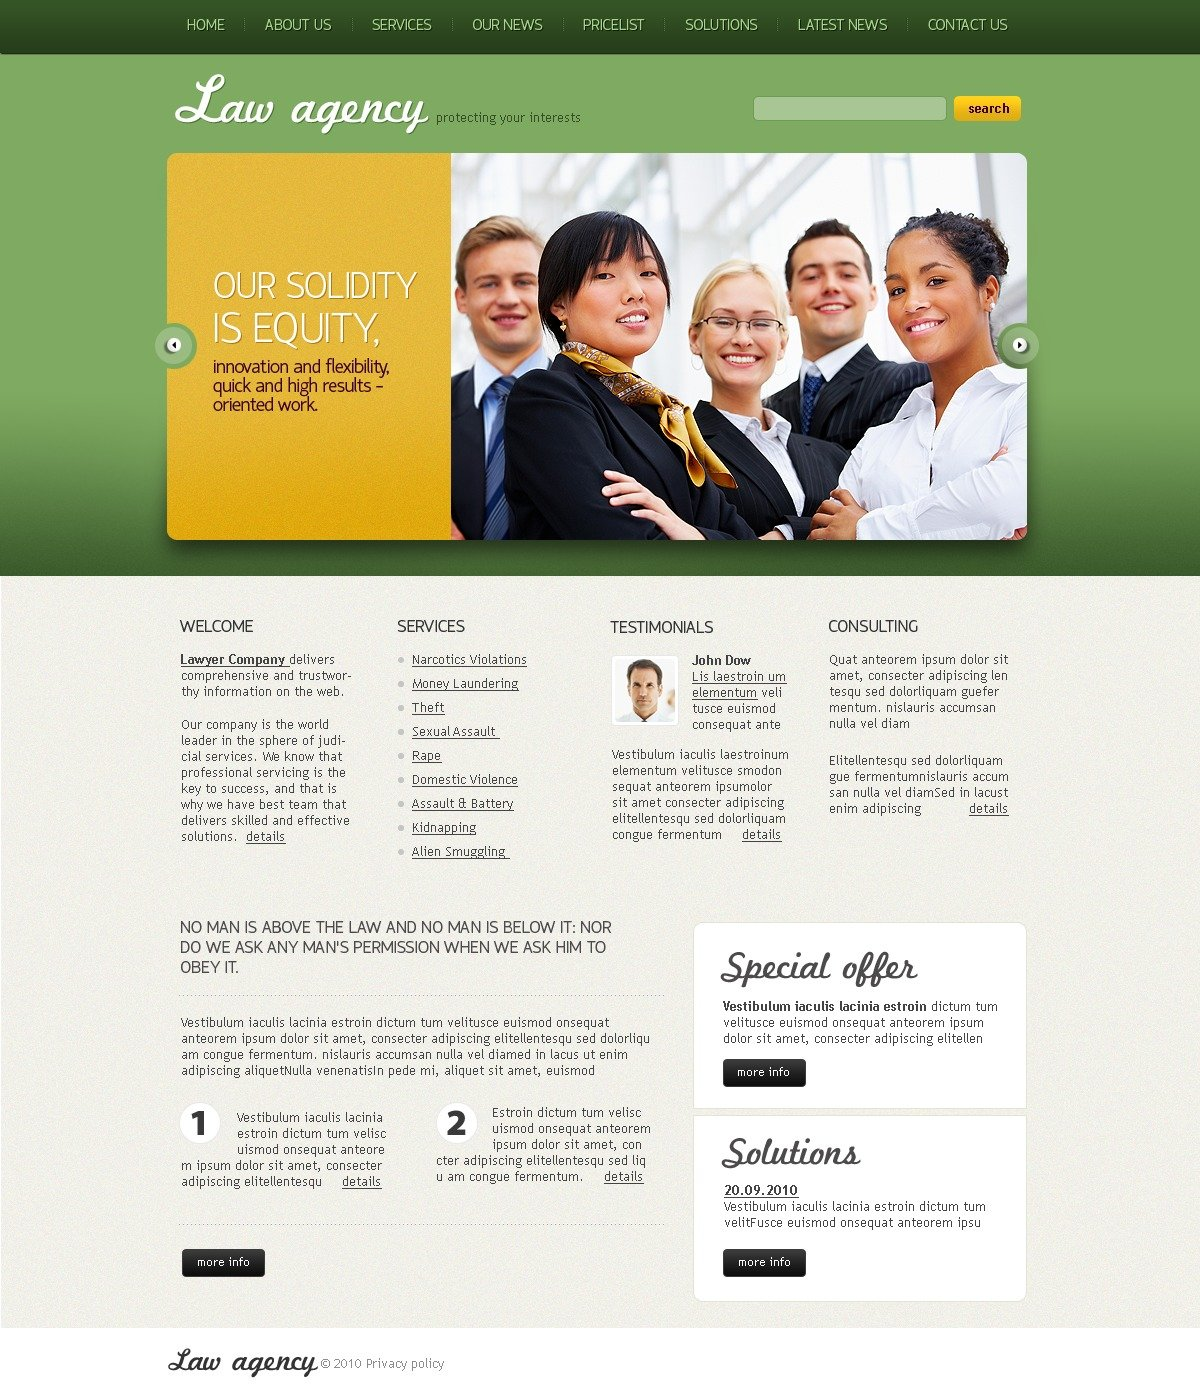 The Law Agency PSD Design 54467, one of the best PSD templates of its kind (law, wide, jquery), also known as law agency PSD template, lawyers bureau PSD template, private constitution PSD template, rules PSD template, case PSD template, business PSD template, affair PSD template, practice PSD template, experience PSD template, membership PSD template, work PSD template, articles PSD template, responsibility PSD template, biography PSD template, tips PSD template, testimonials PSD template, client PSD template, clients PSD template, partners PSD template, services PSD template, specials PSD template, help PSD template, support PSD template, advocacy PSD template, maintenance PSD template, pr and related with law agency, lawyers bureau, private constitution, rules, case, business, affair, practice, experience, membership, work, articles, responsibility, biography, tips, testimonials, client, clients, partners, services, specials, help, support, advocacy, maintenance, pr, etc.